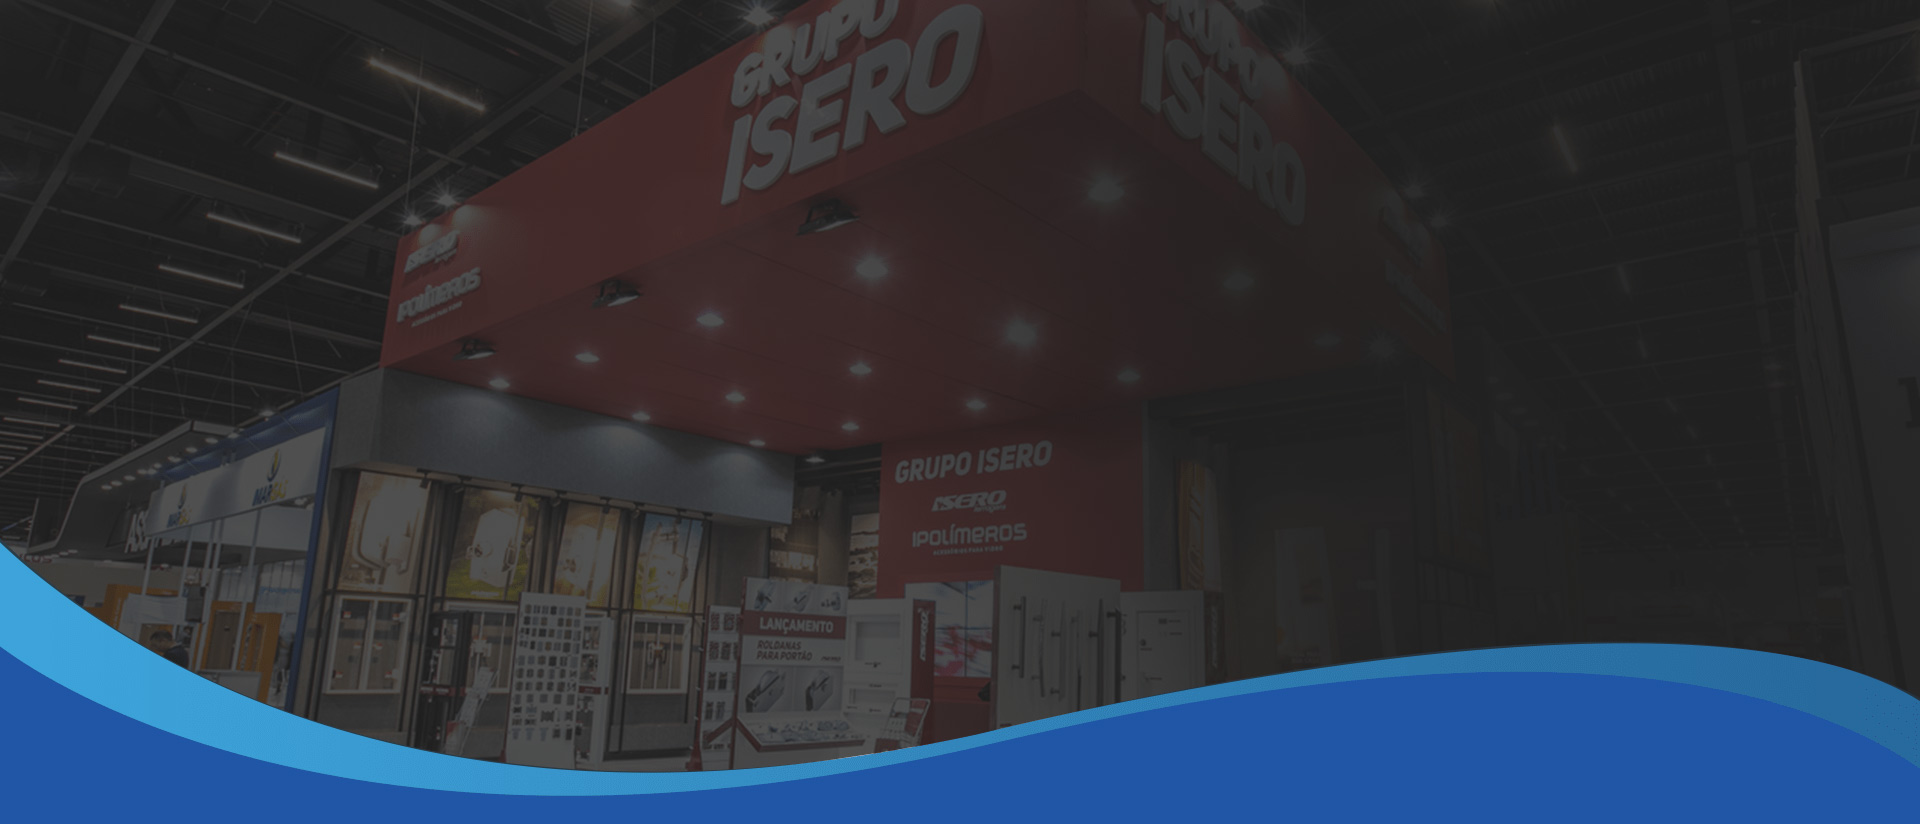 Grupo Isero Trade Show Display In Concord - Sign Source Solution